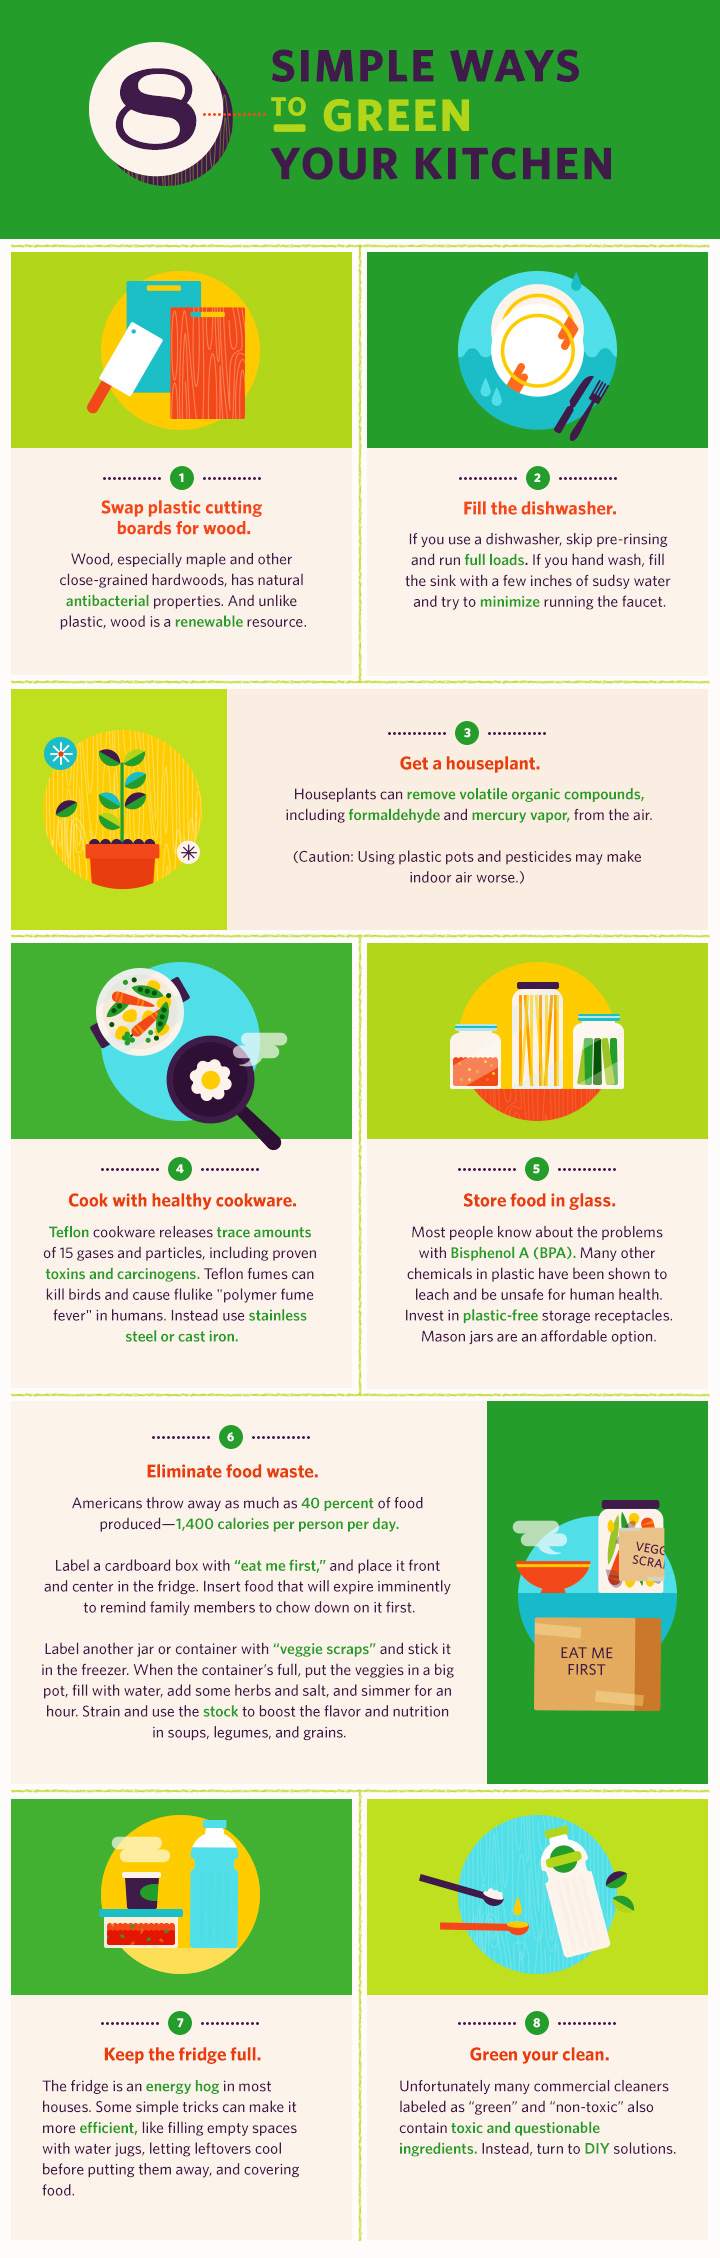 Simple Ways to Green Your Kitchen